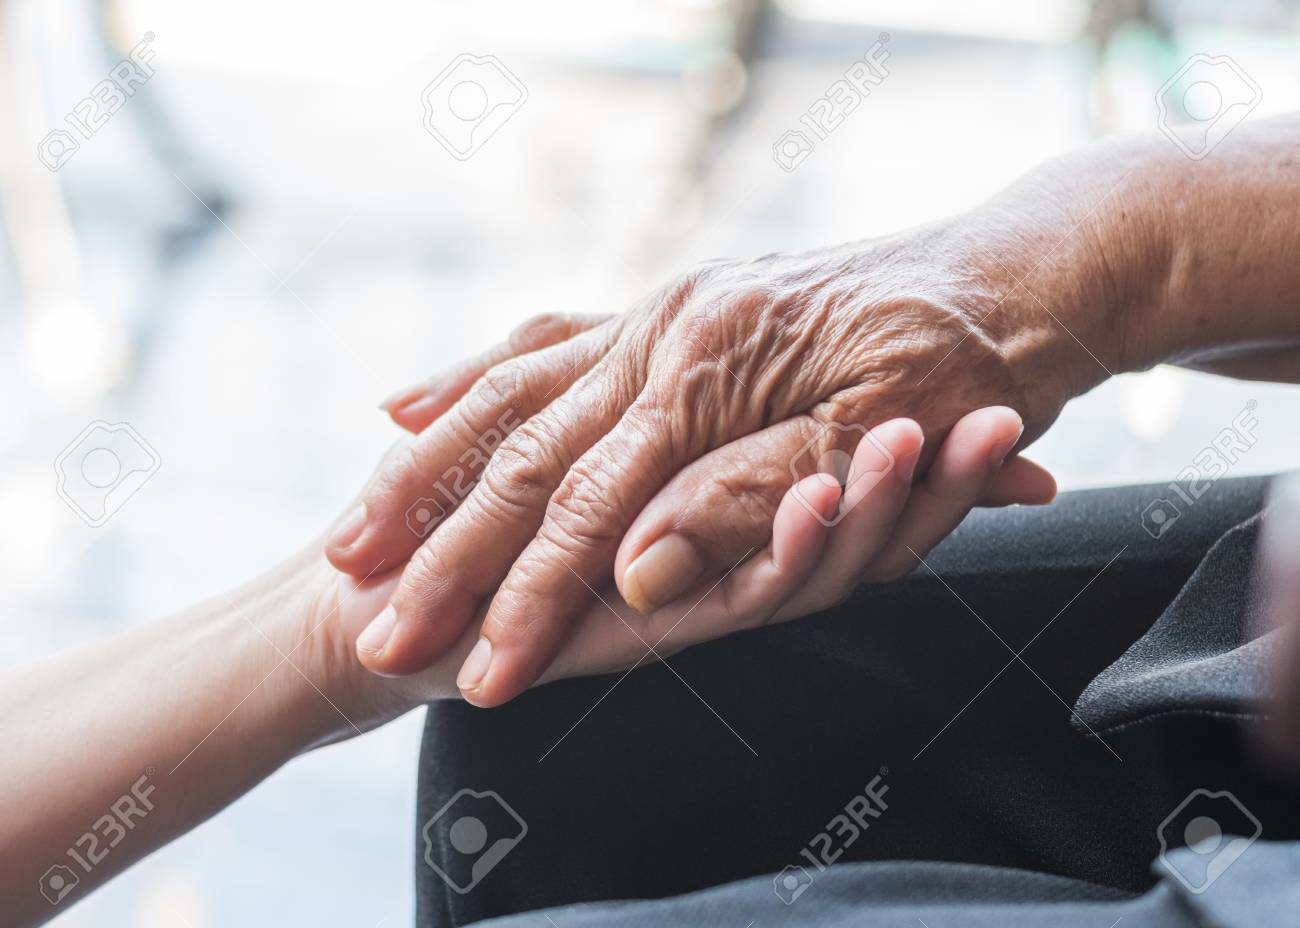 Disability awareness day and aging society concept with Parkinson disease patient or elderly senior person in support of nursing family caregiver's hand - 121248548